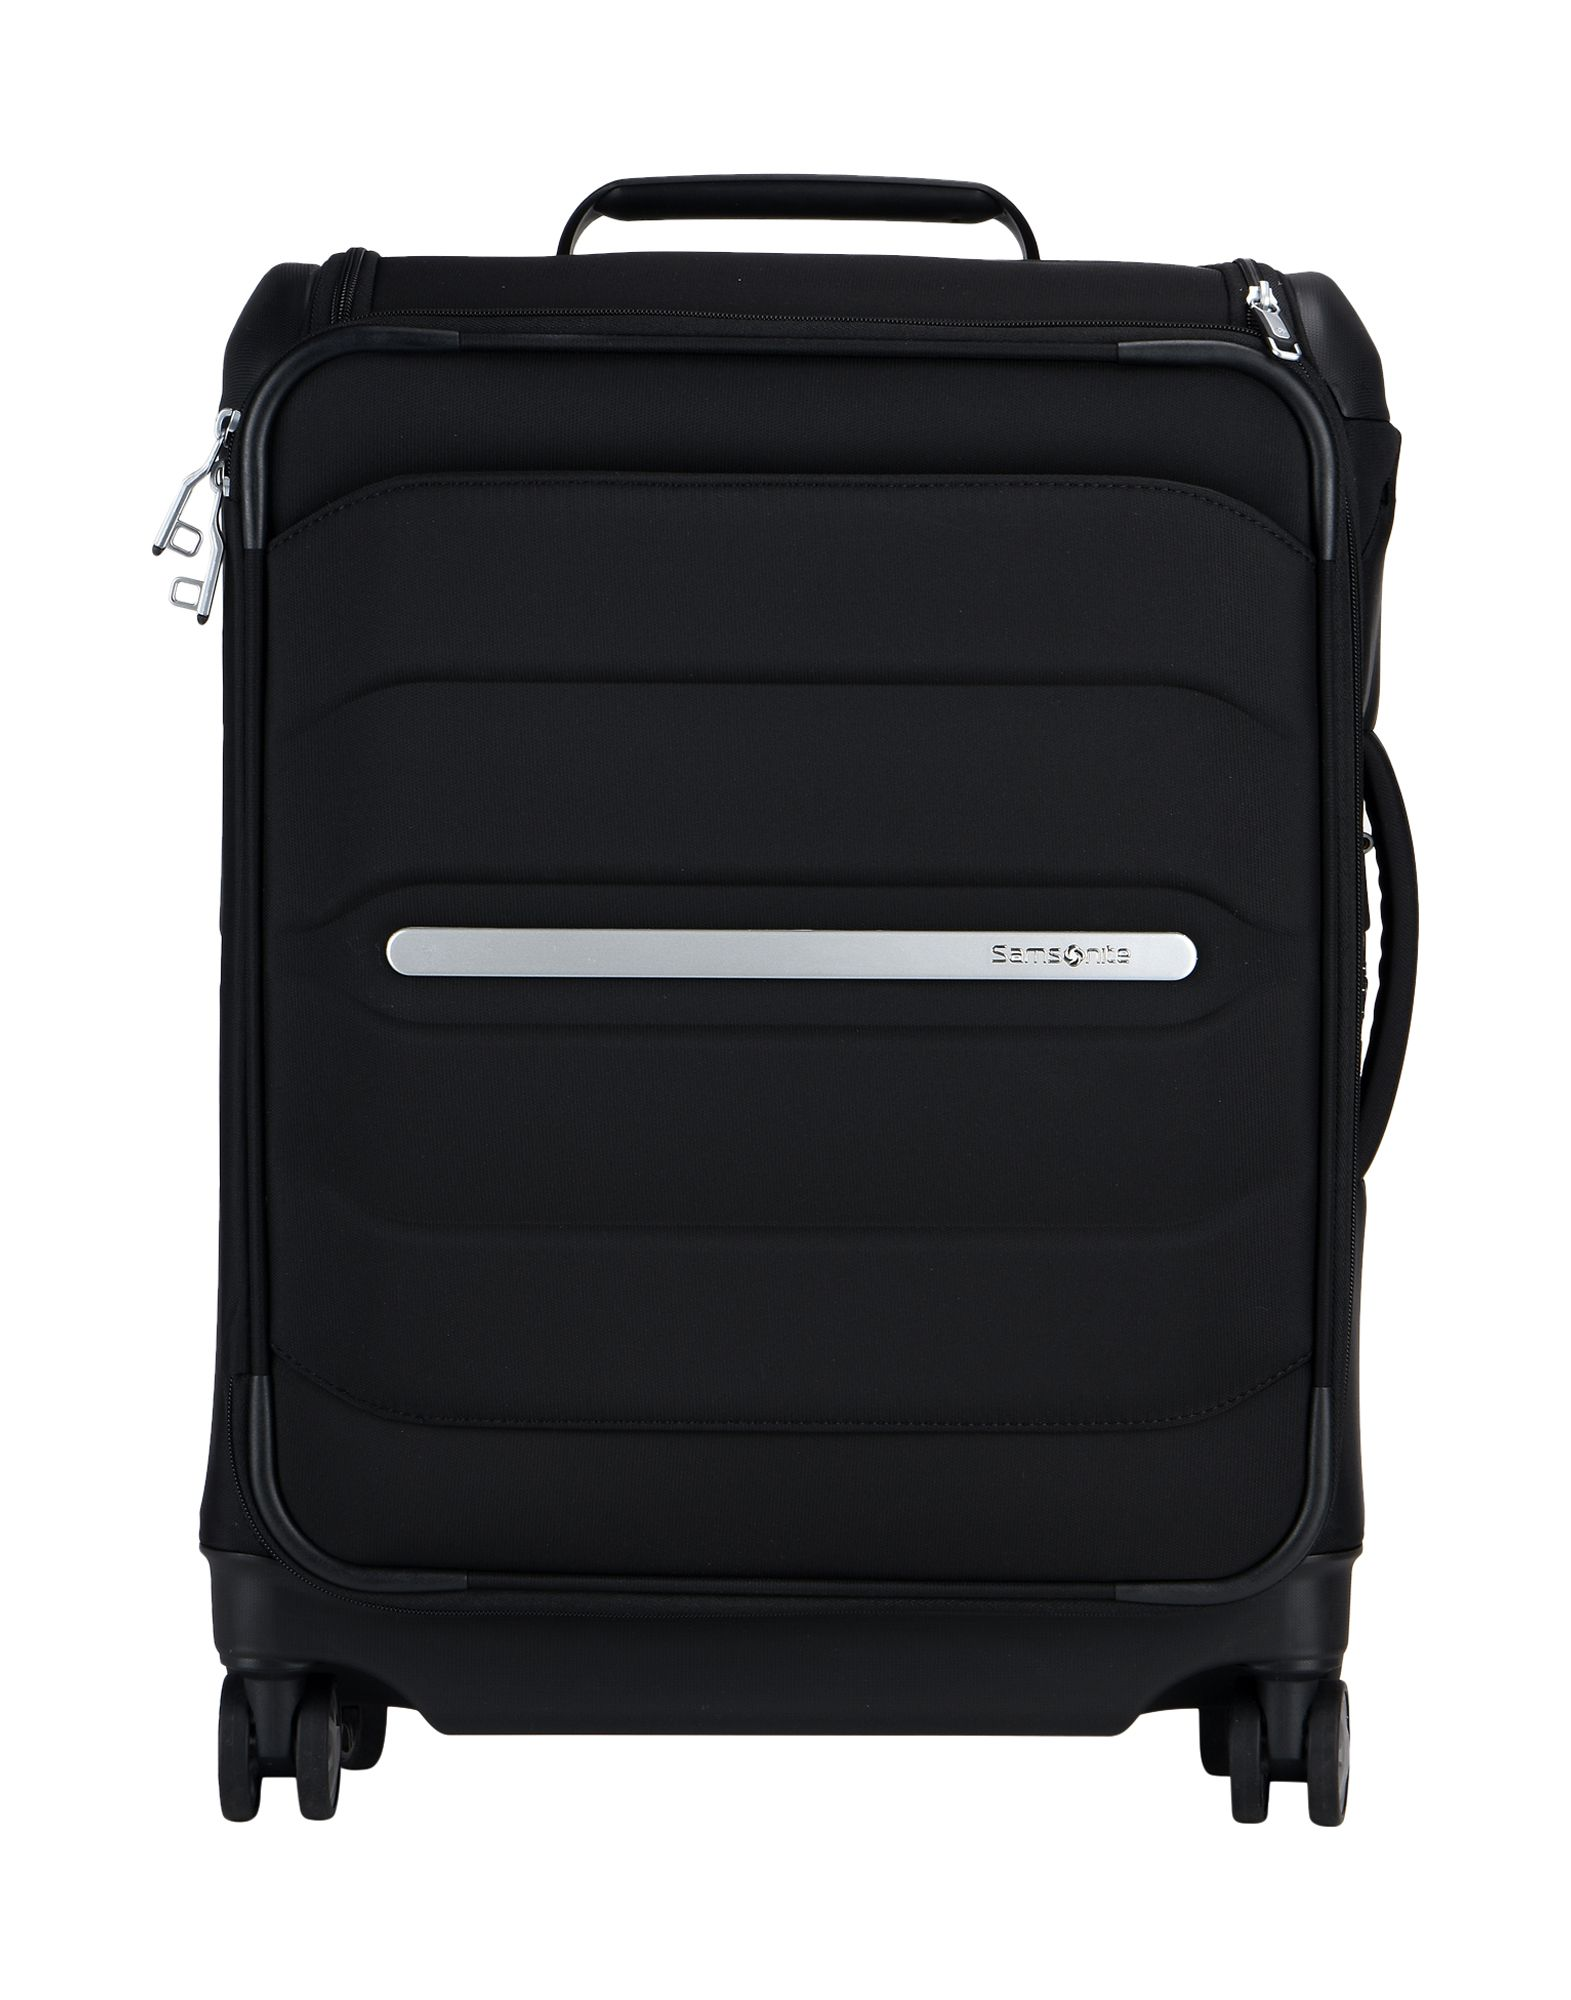 Trolley E Valigie Samsonite Flux Soft Spinner 55/20 Toppocket Black - Donna - Acquista online su